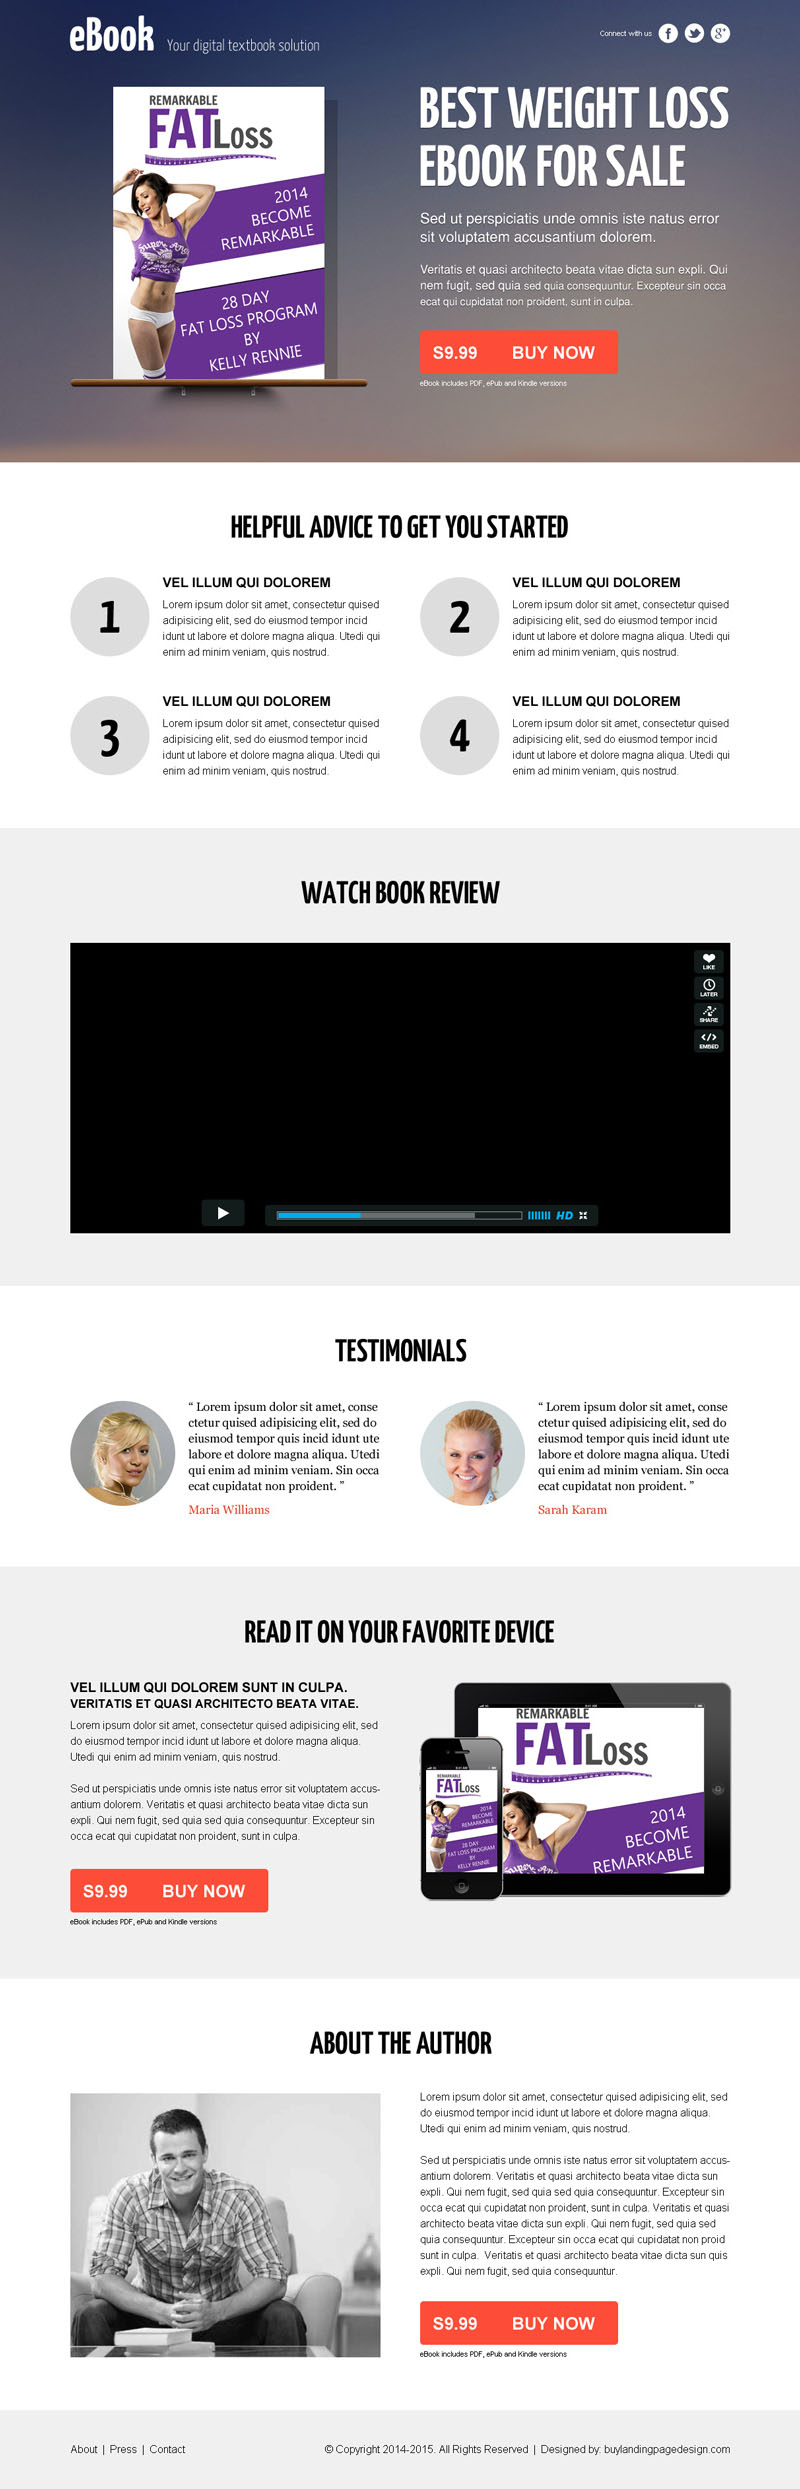 weight-loss-responsive-e-book-landing-page-design-template-002